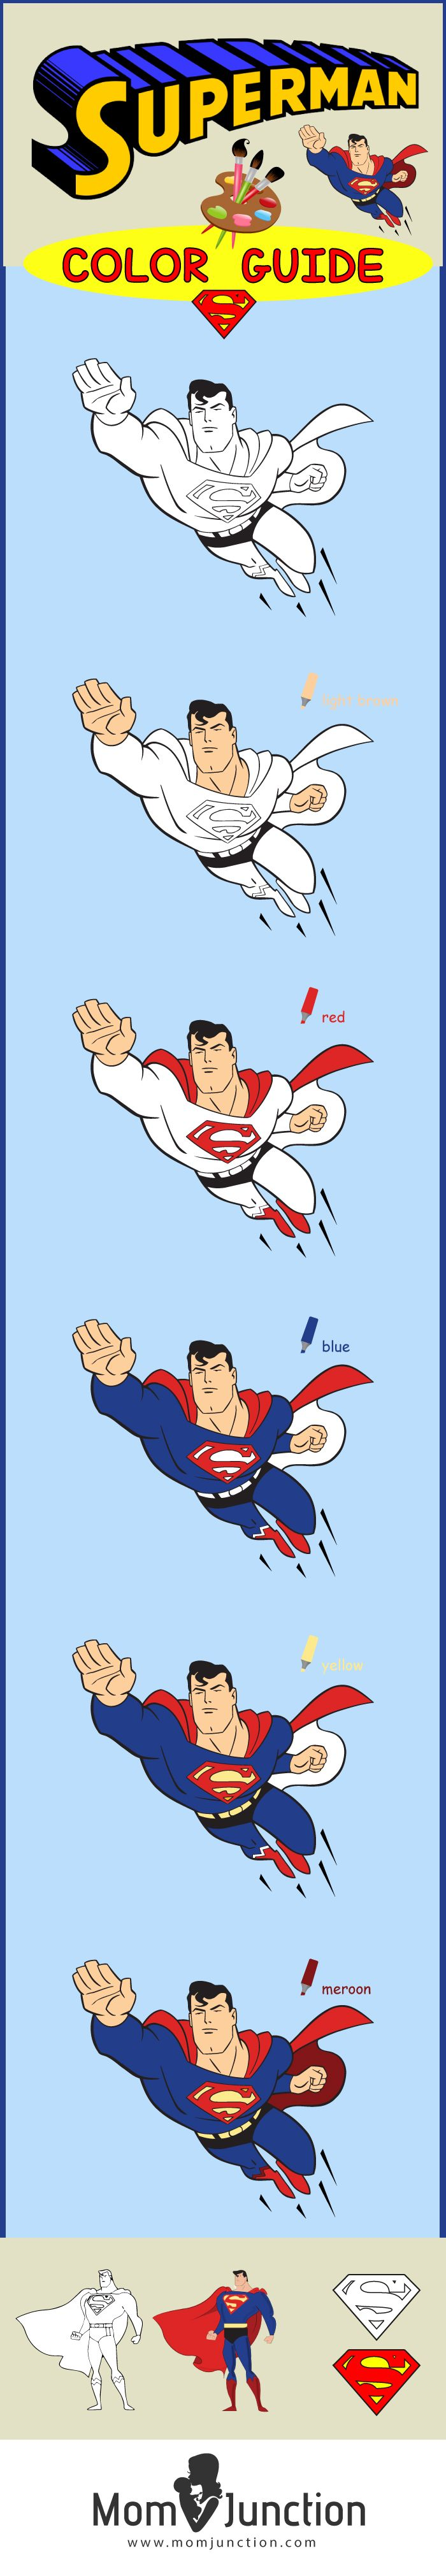 Summer reading 2015 coloring pages - Superman Coloring Pages Your Toddler Kids Love Coloring And What Better Way To Increase